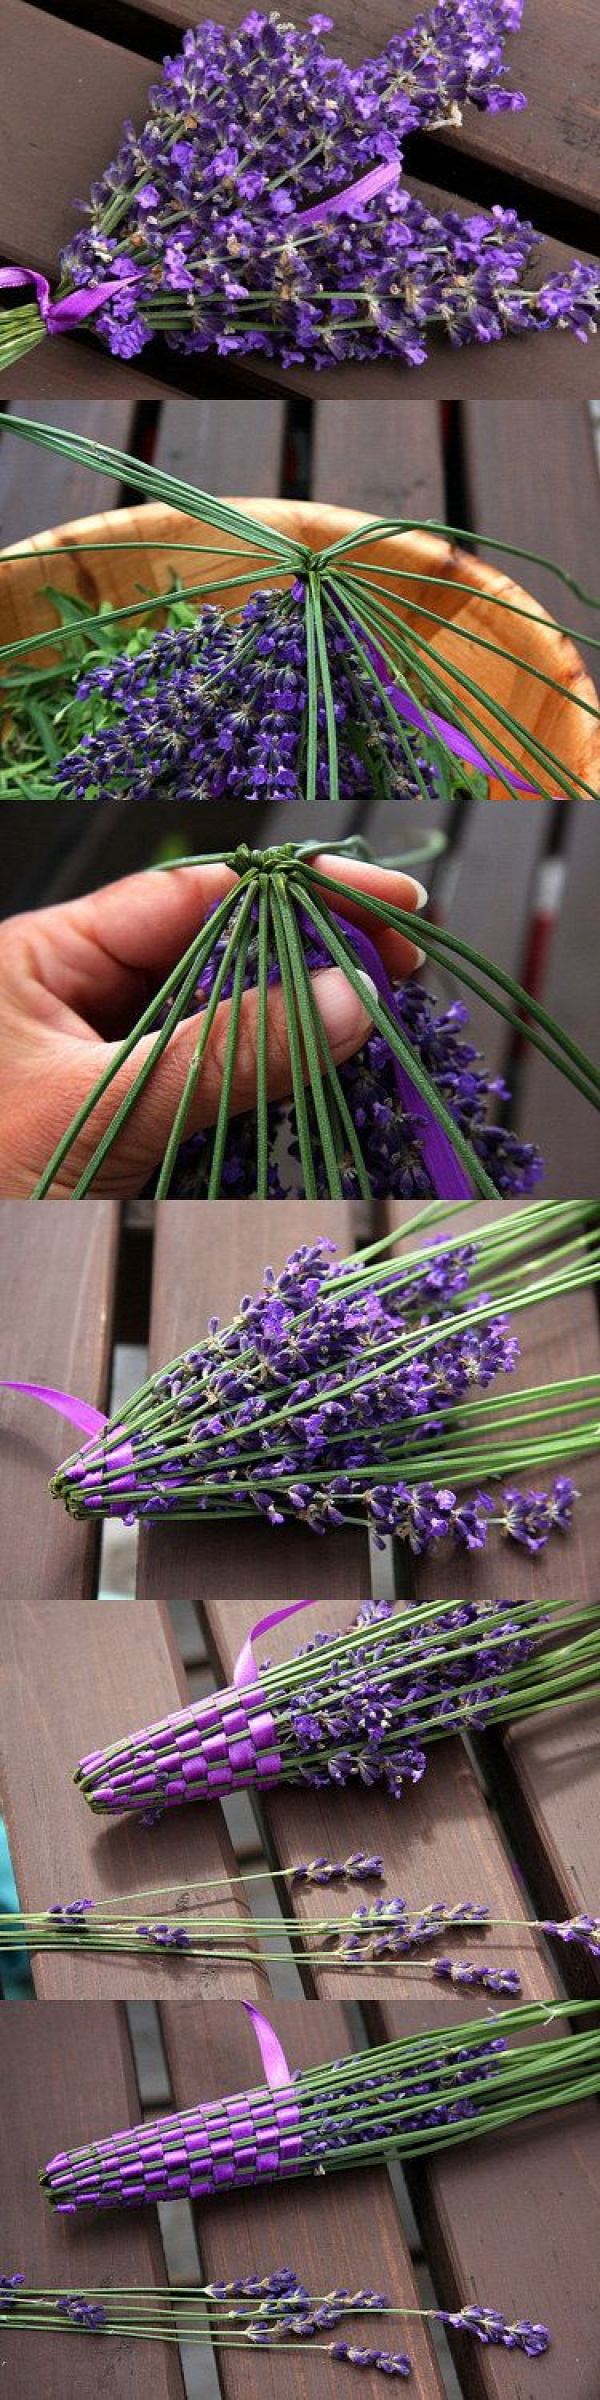 Organic Lavender Wand - Light Green and Purple Satin Ribbon - Made in Canada. $19.00, via Etsy. - ça est une chouette idée